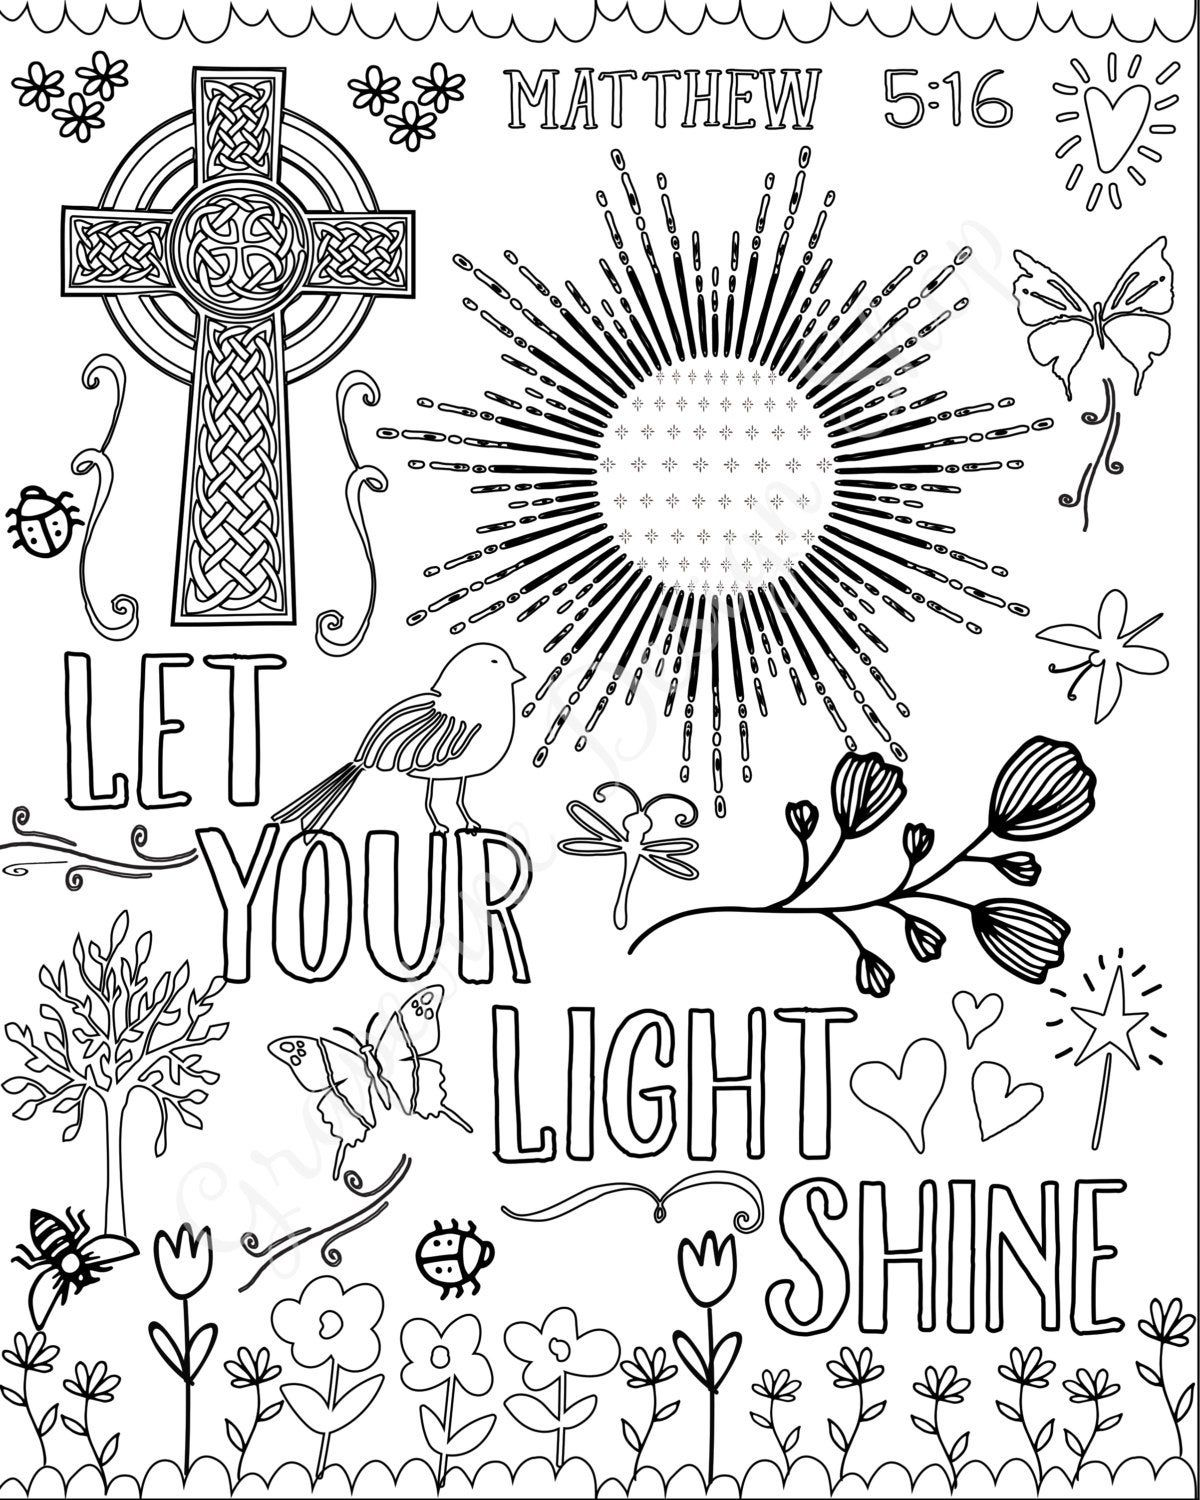 free bible verse coloring pages free bible verse coloring pages for kids learning how to verse bible pages coloring free